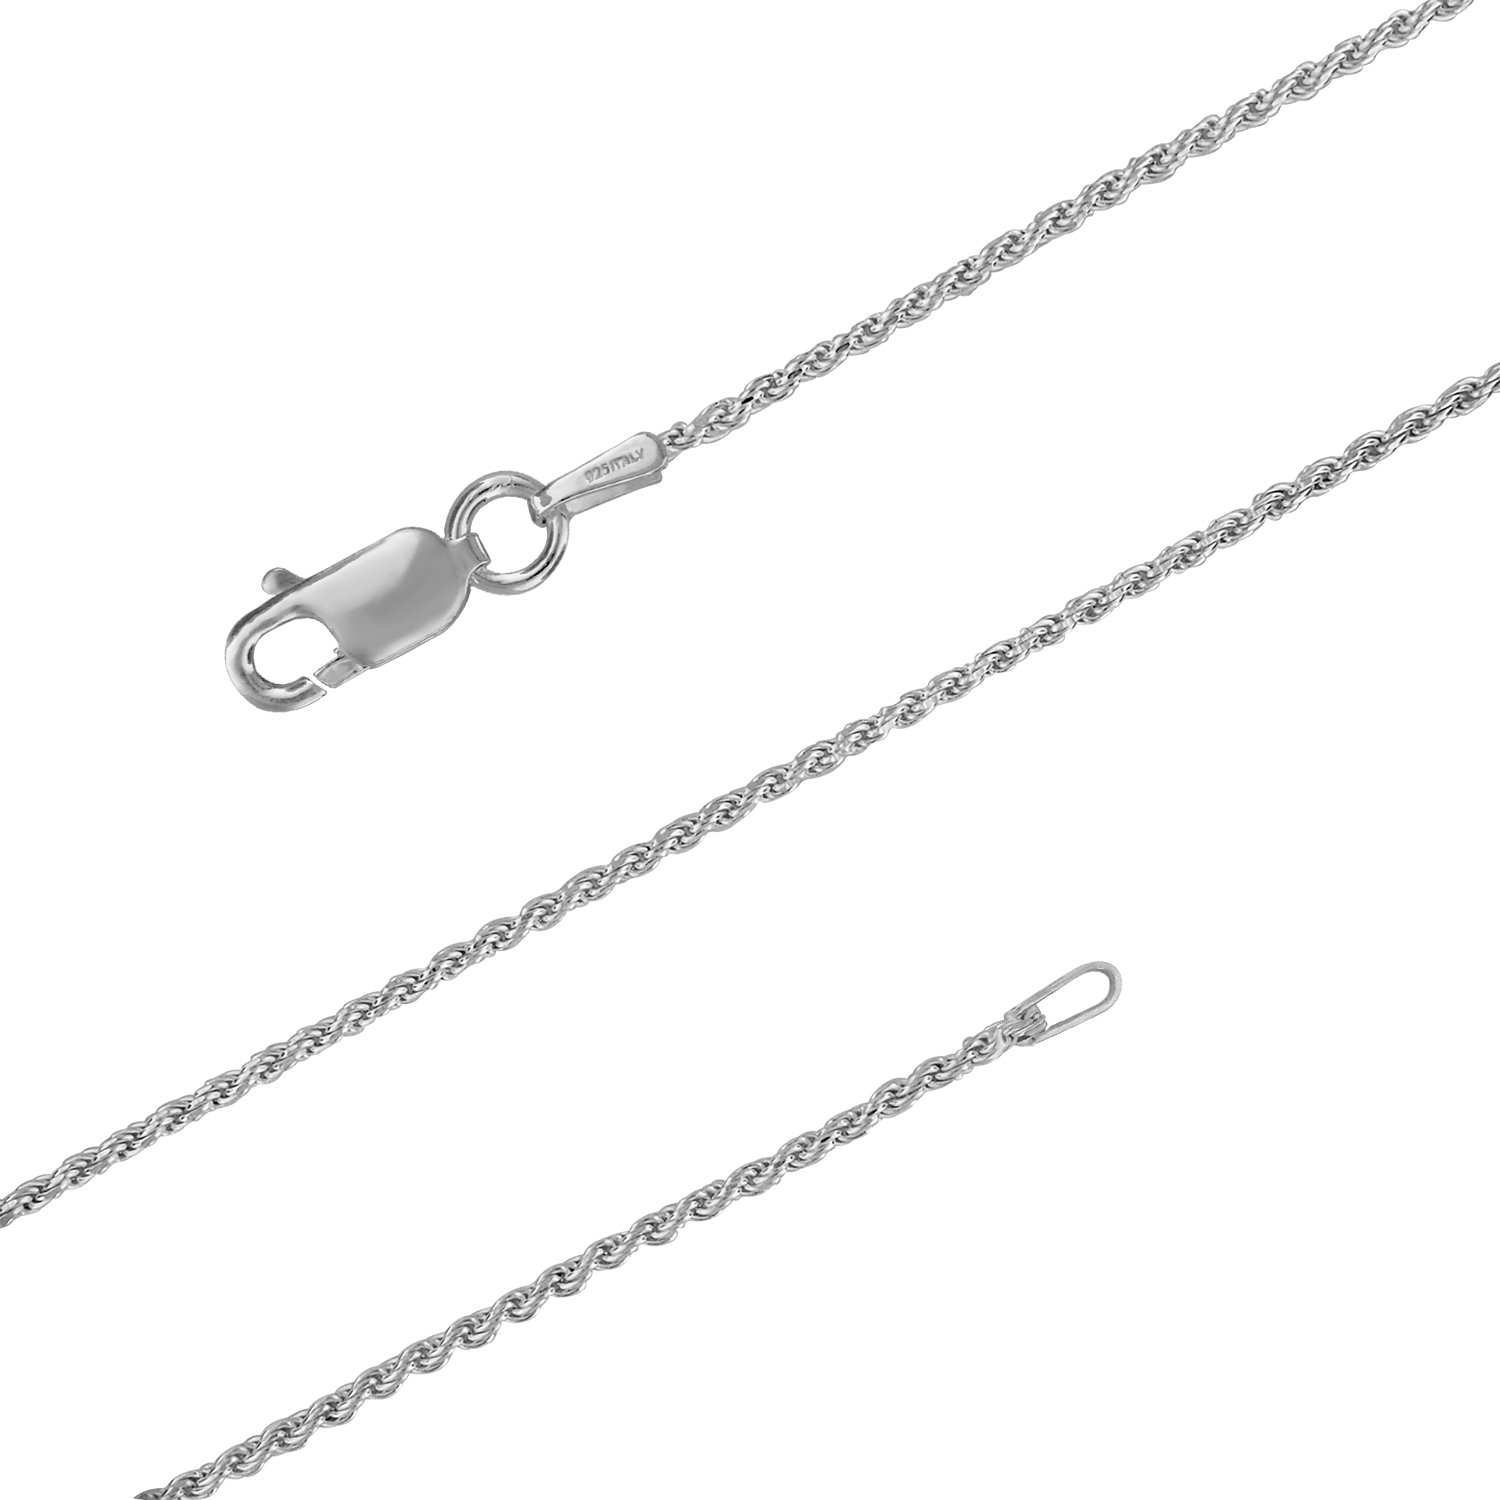 Sterling Silver 1.1mm Diamond-Cut Rope Chain Necklace Solid Italian Nickel-Free, 21 Inch